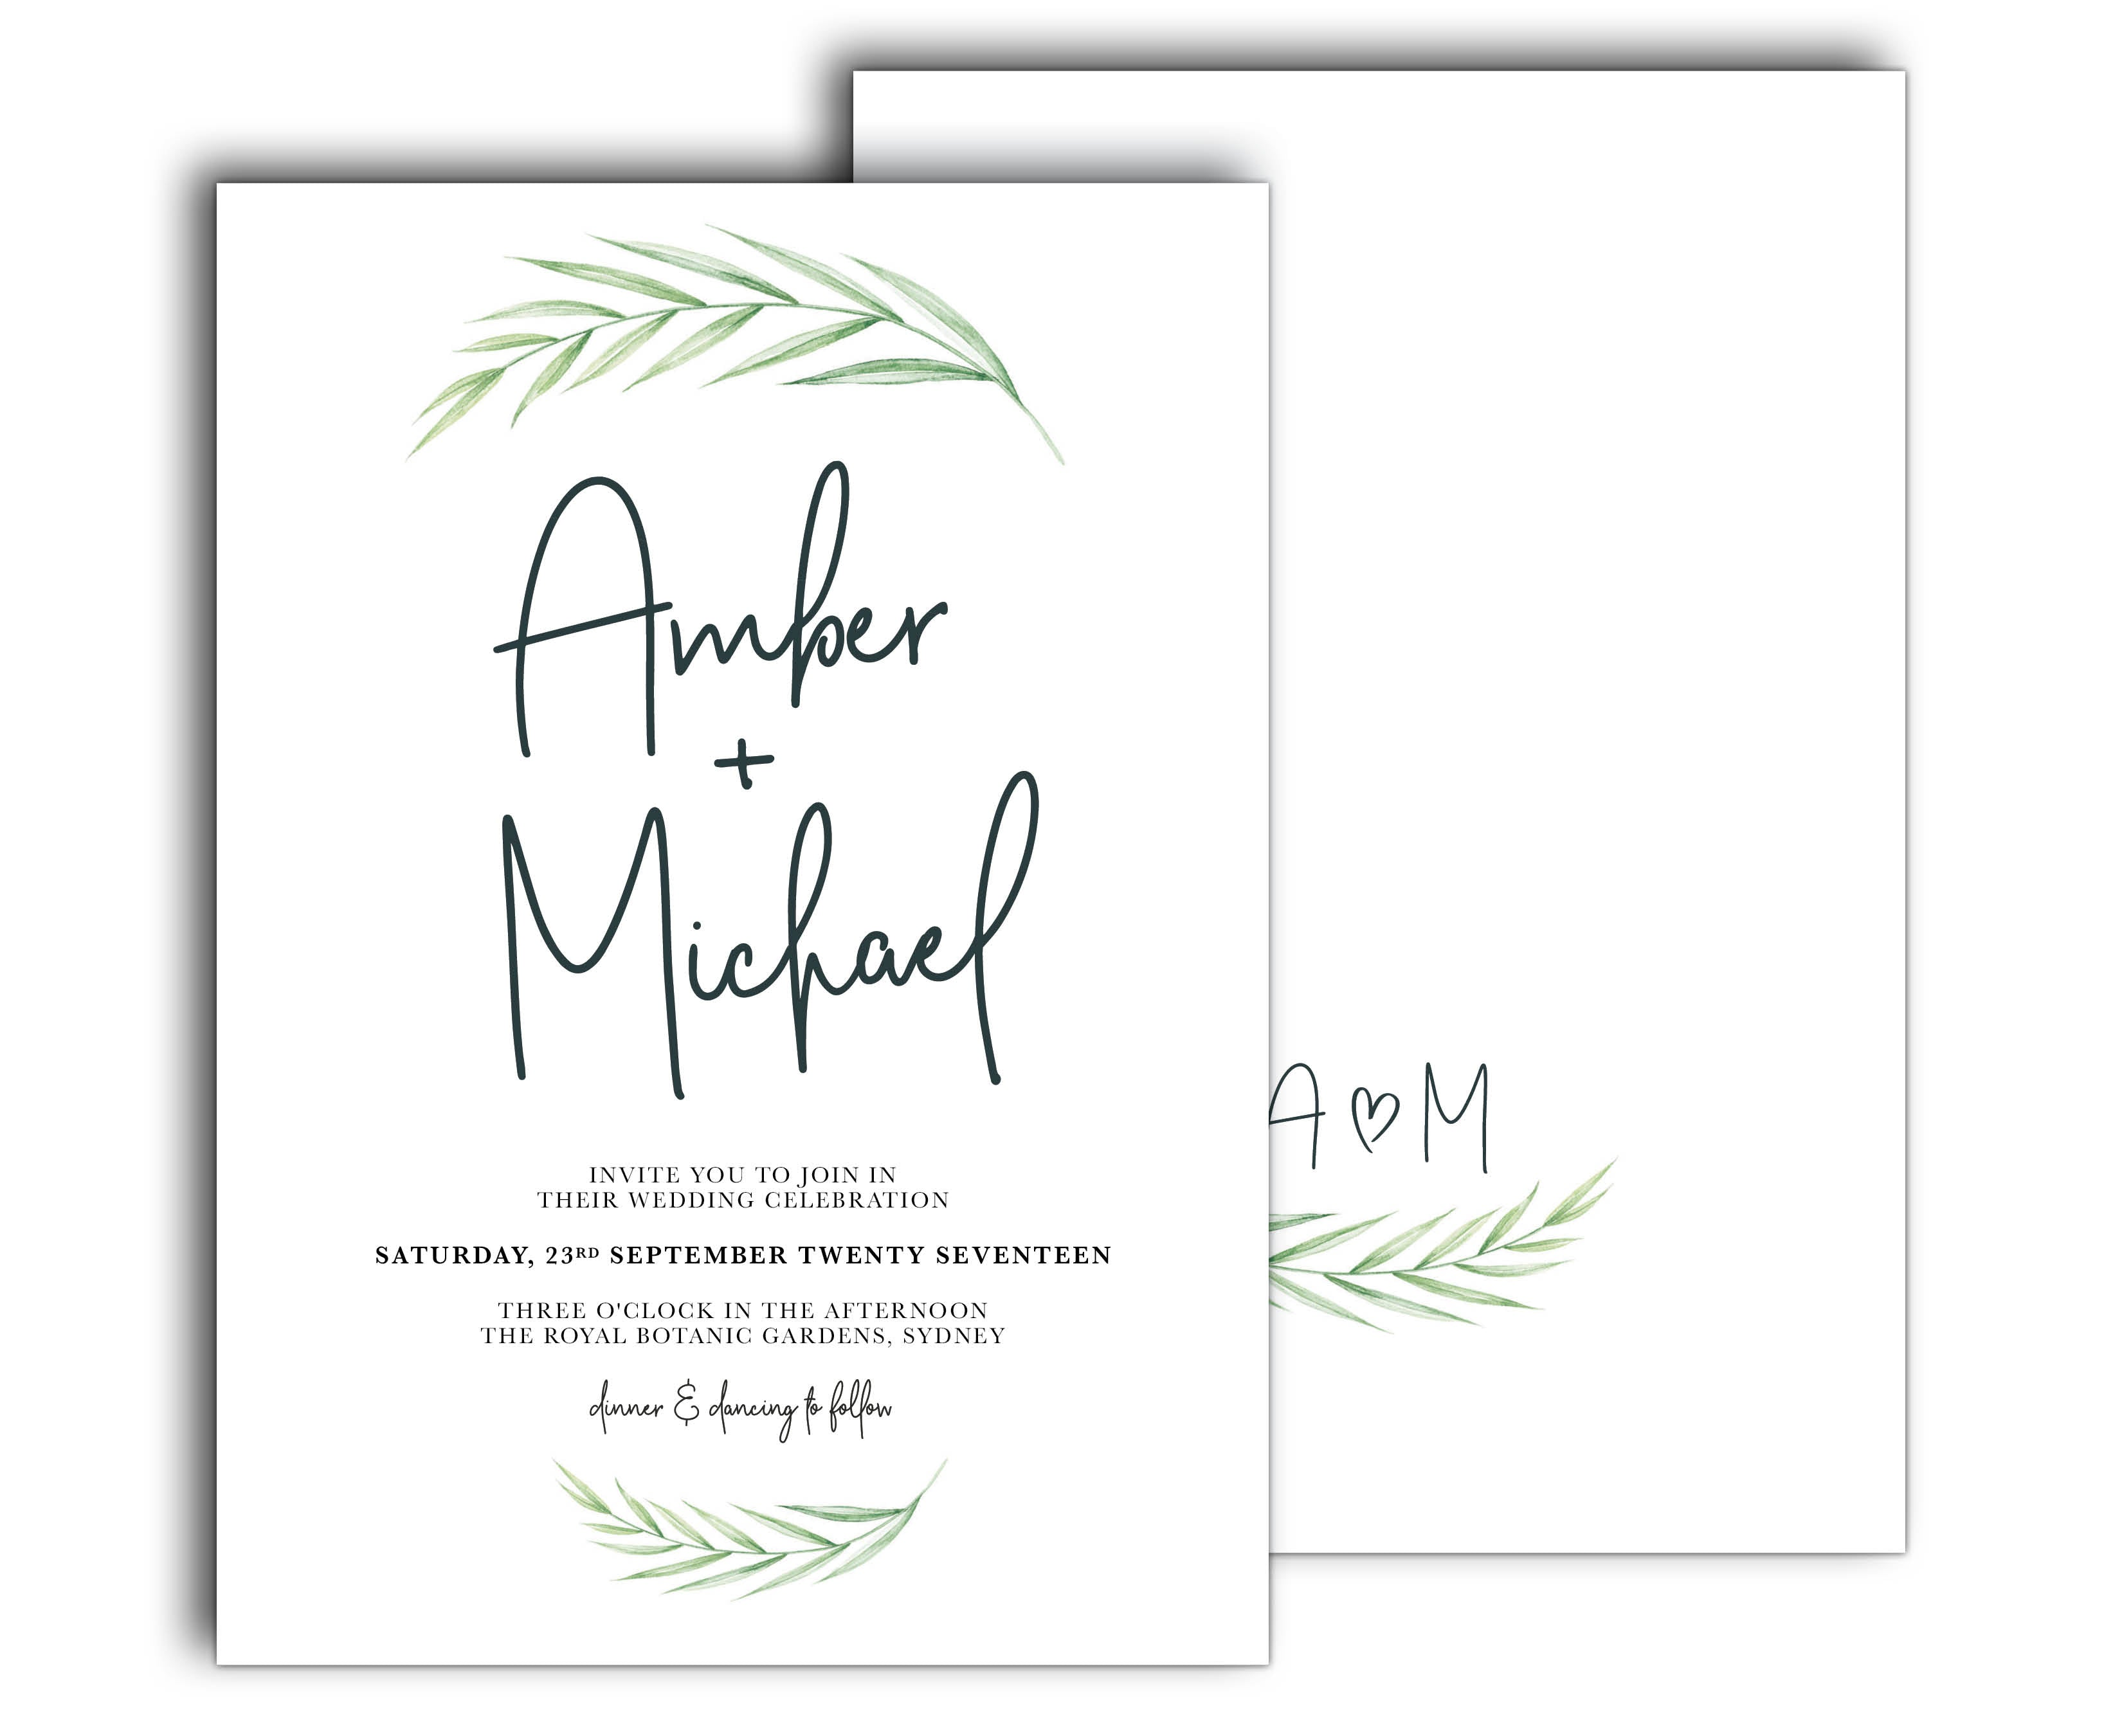 graphic wedding invitations - 28 images - photolizer graphic and ...